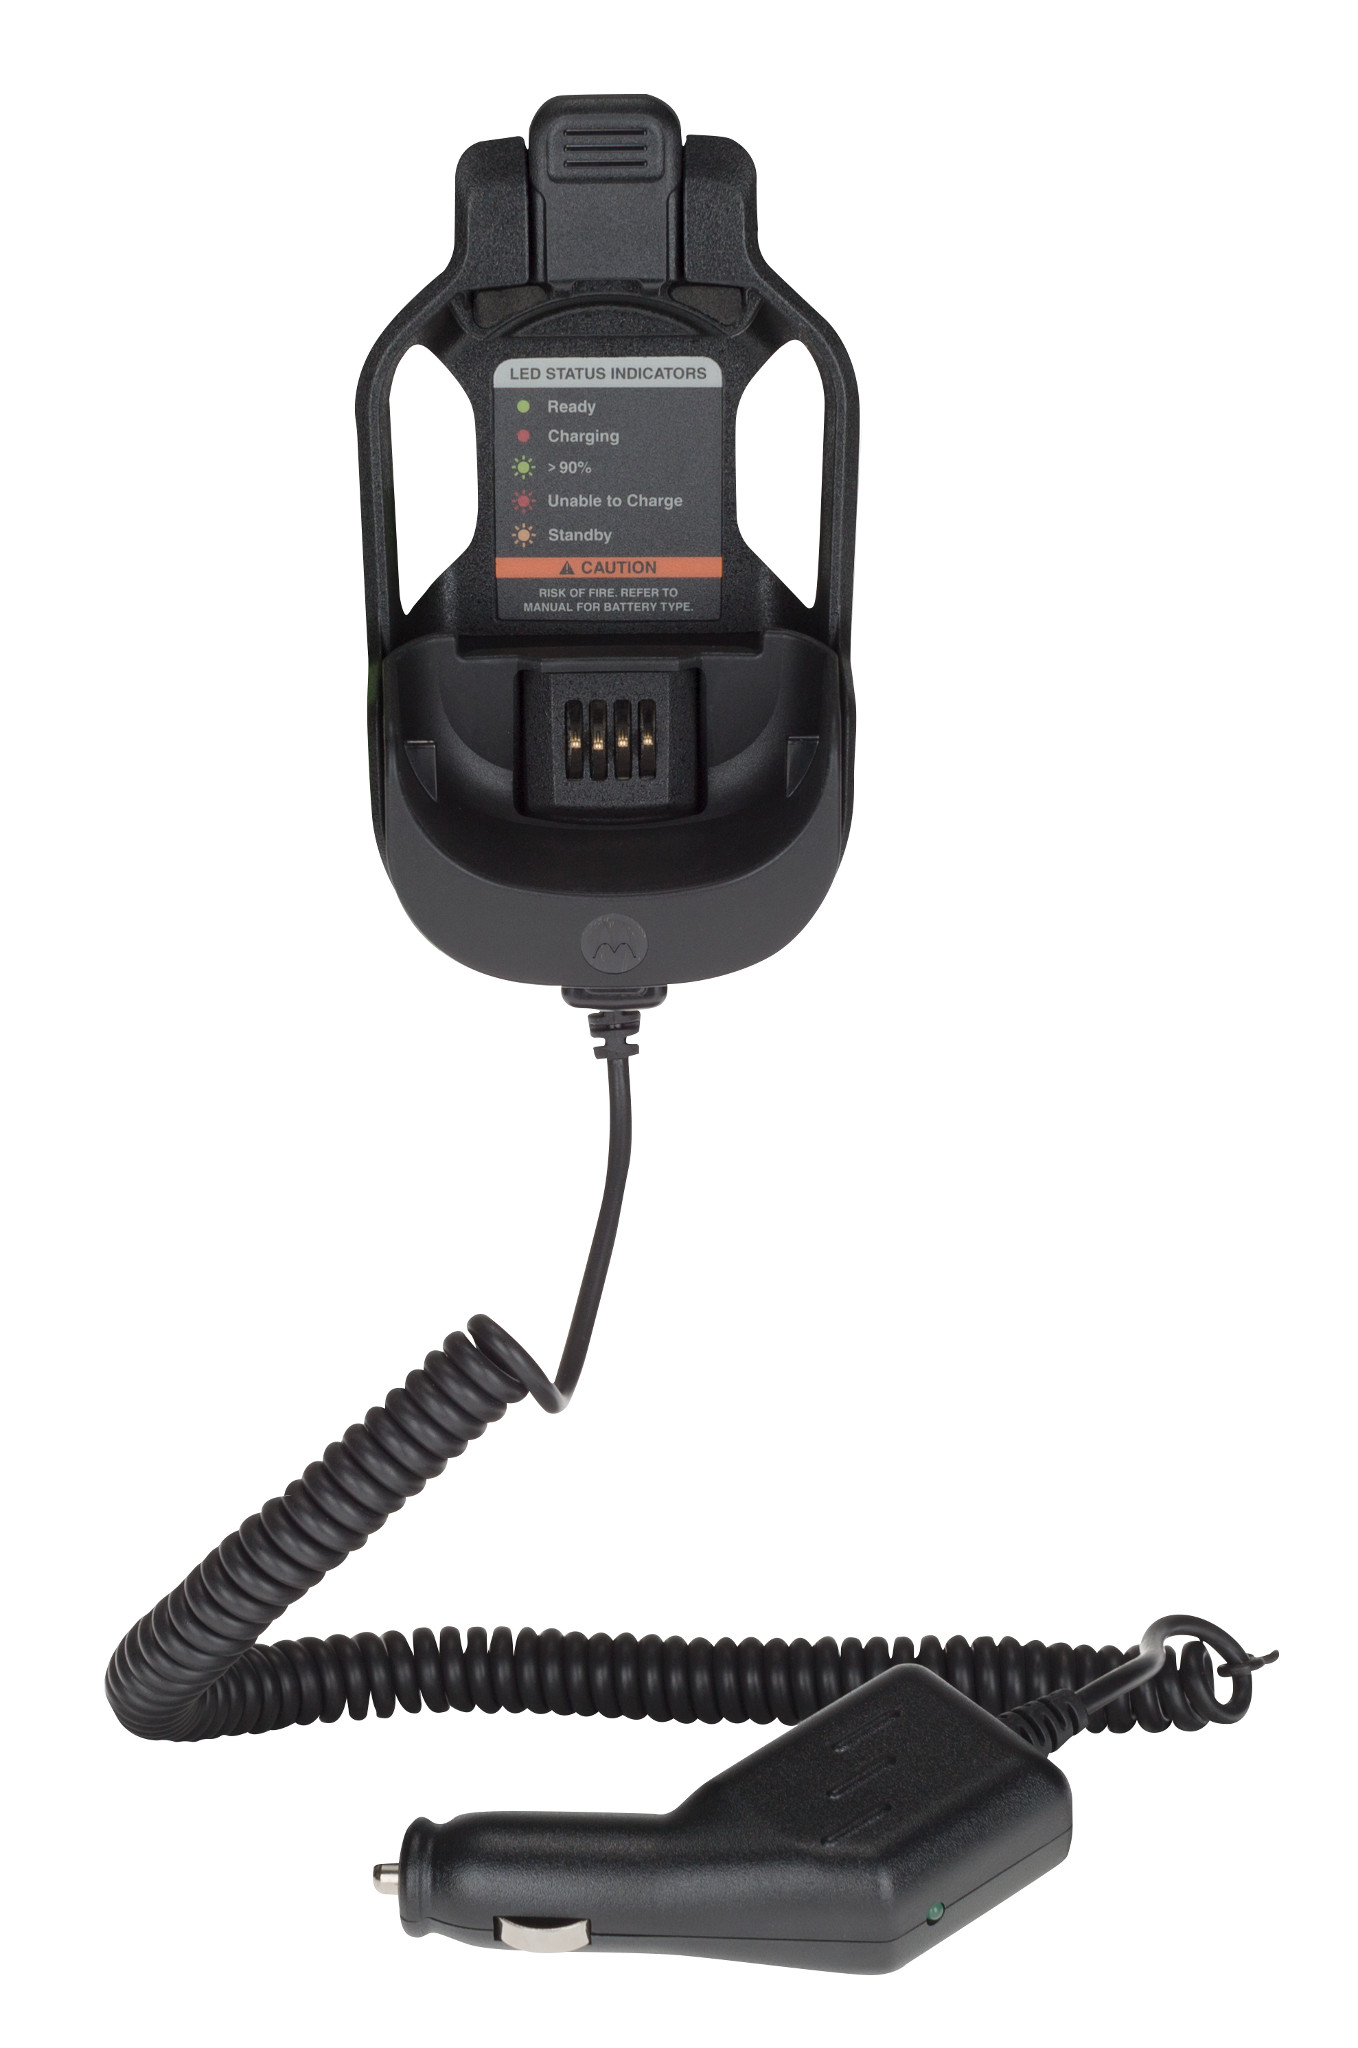 Image of Wireless RSM Vehicular Charger PMLN6716